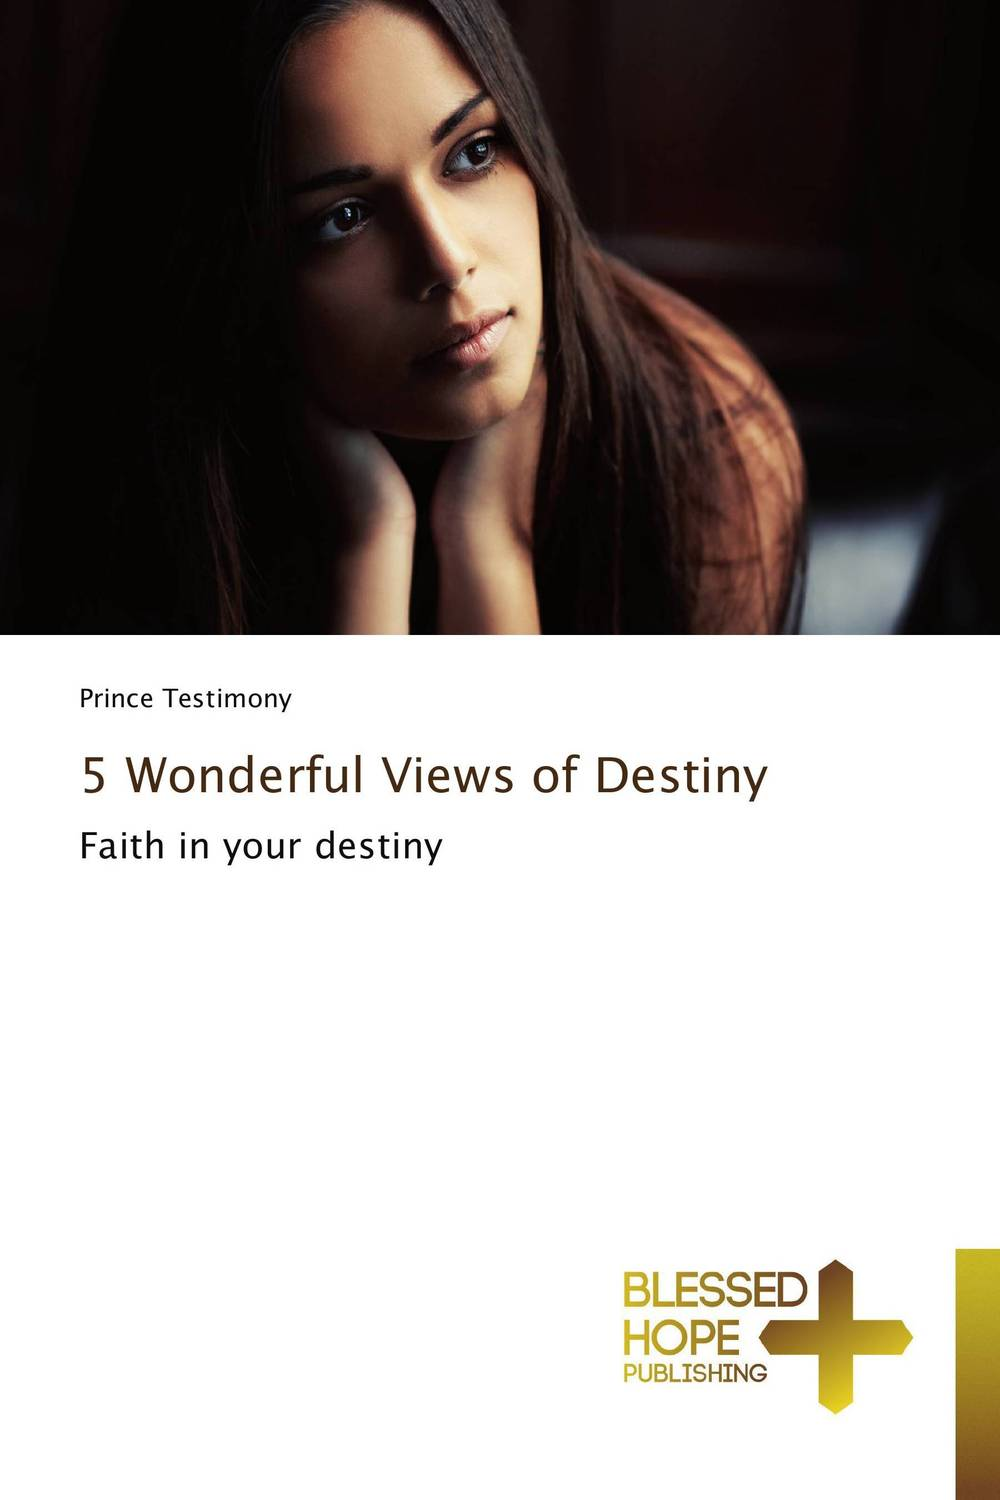 5 Wonderful Views of Destiny alexander iliashchuk snore or one guy used to have it and now it is gone so it will go away in your case too